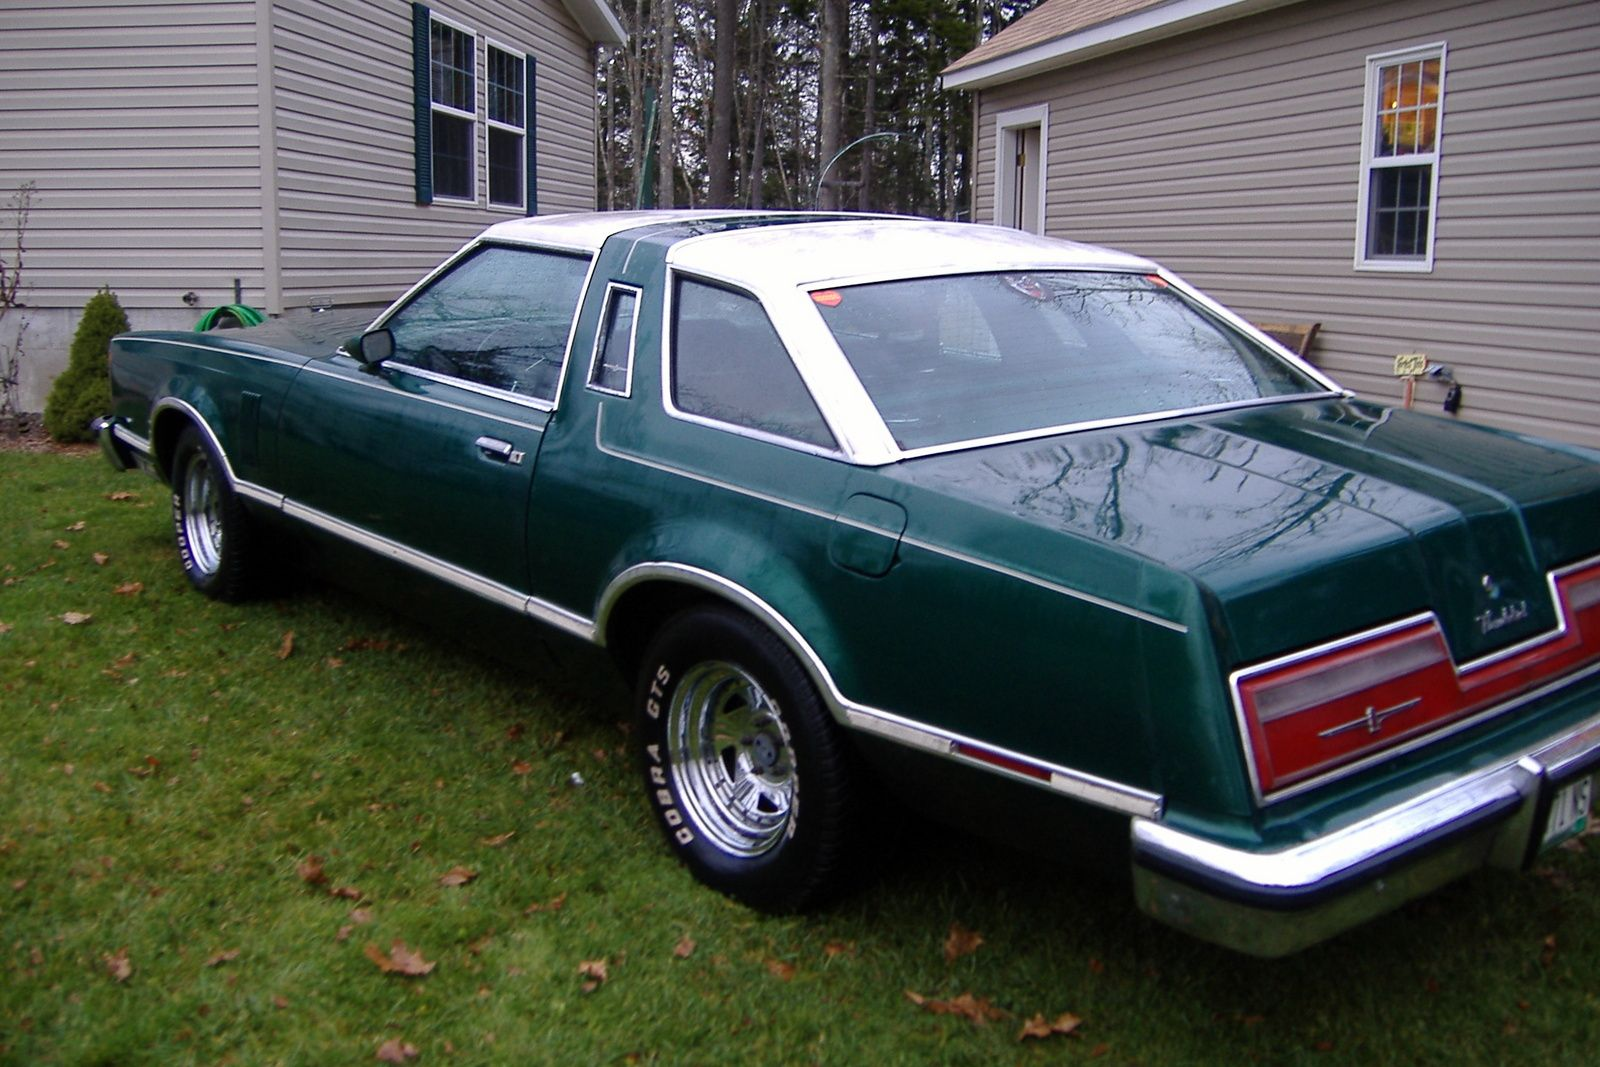 medium resolution of blacktie64 s 1977 ford thunderbird my grandma had one just like it spartan green with white leather seats need me one